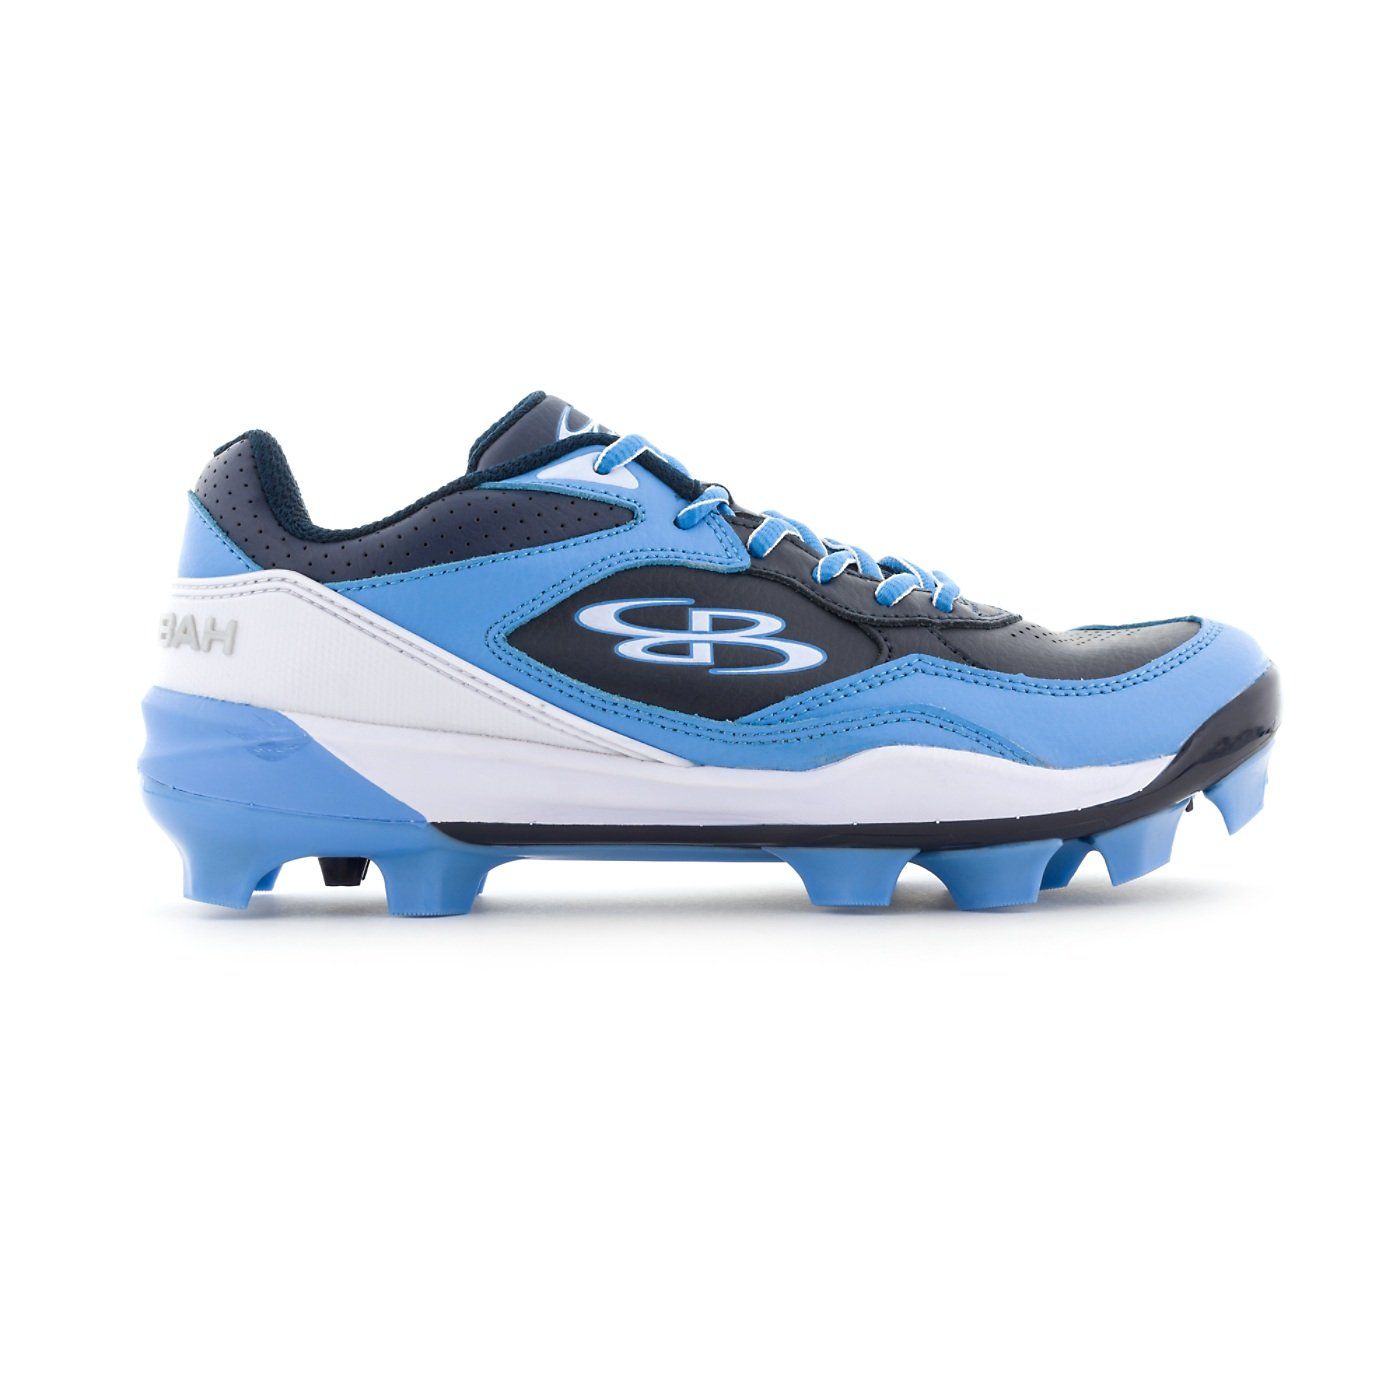 Boombah Women's Endura Molded Cleats Navy/Columbia Blue - Size 9 by Boombah